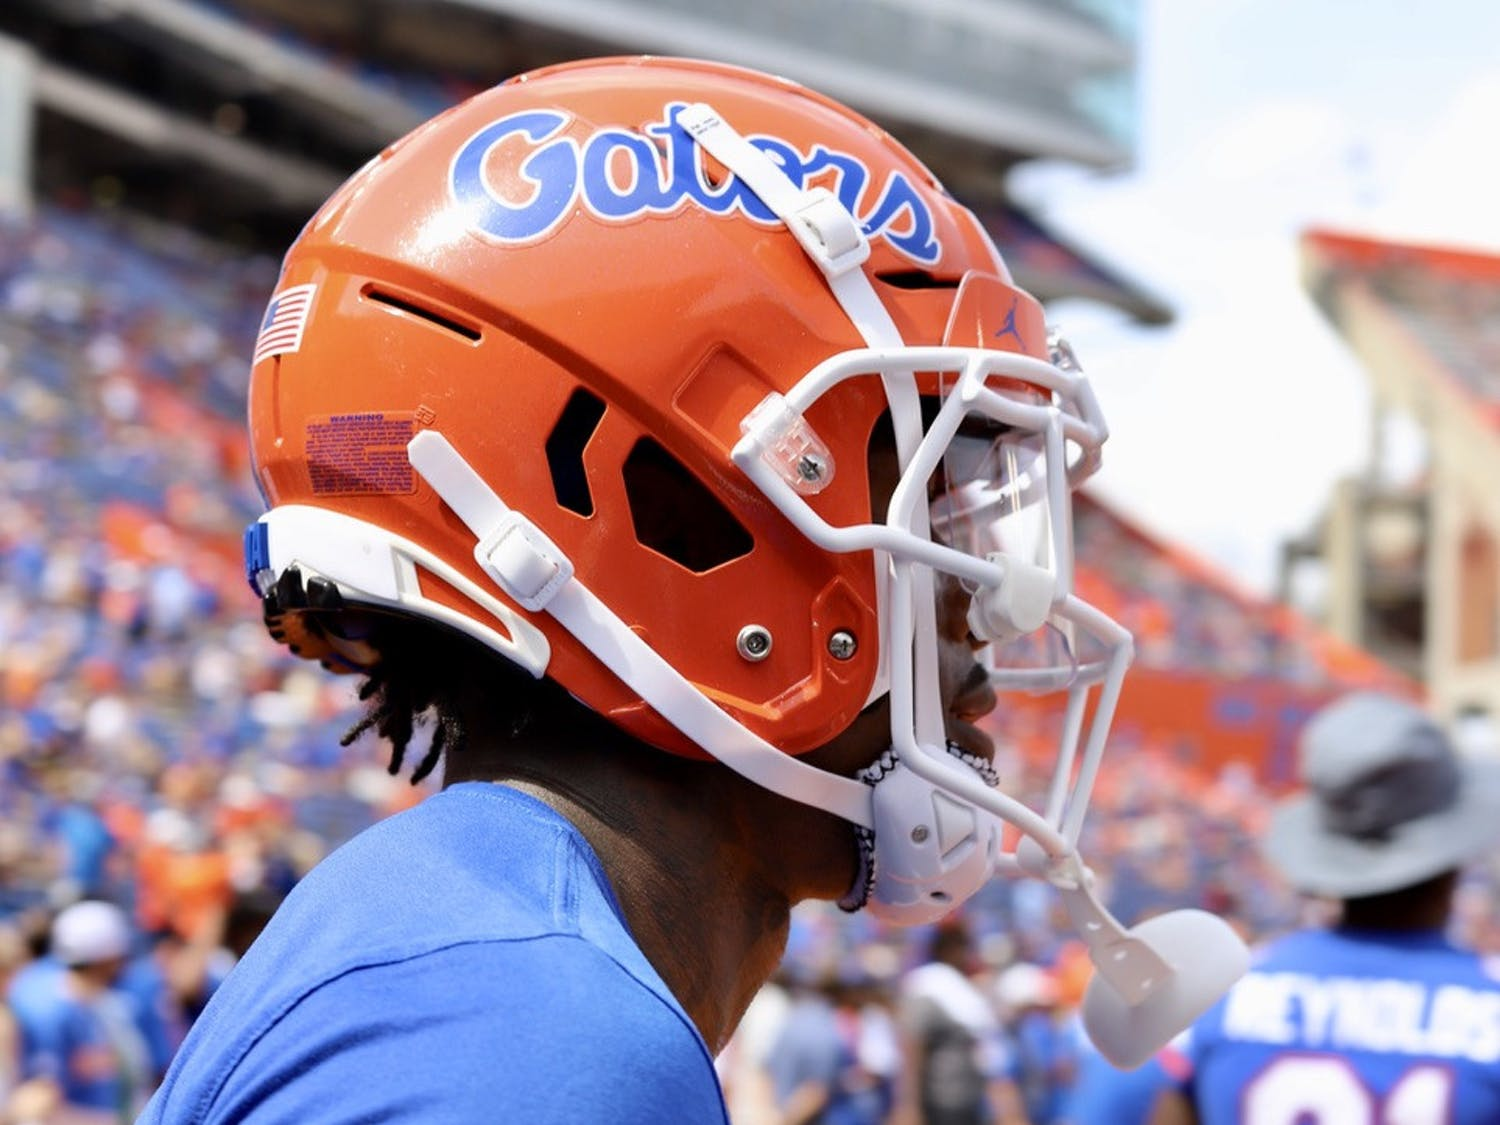 Florida wide receiver Jacob Copeland, pictured during warmups before the Gators' Sept. 18 game against Alabama.